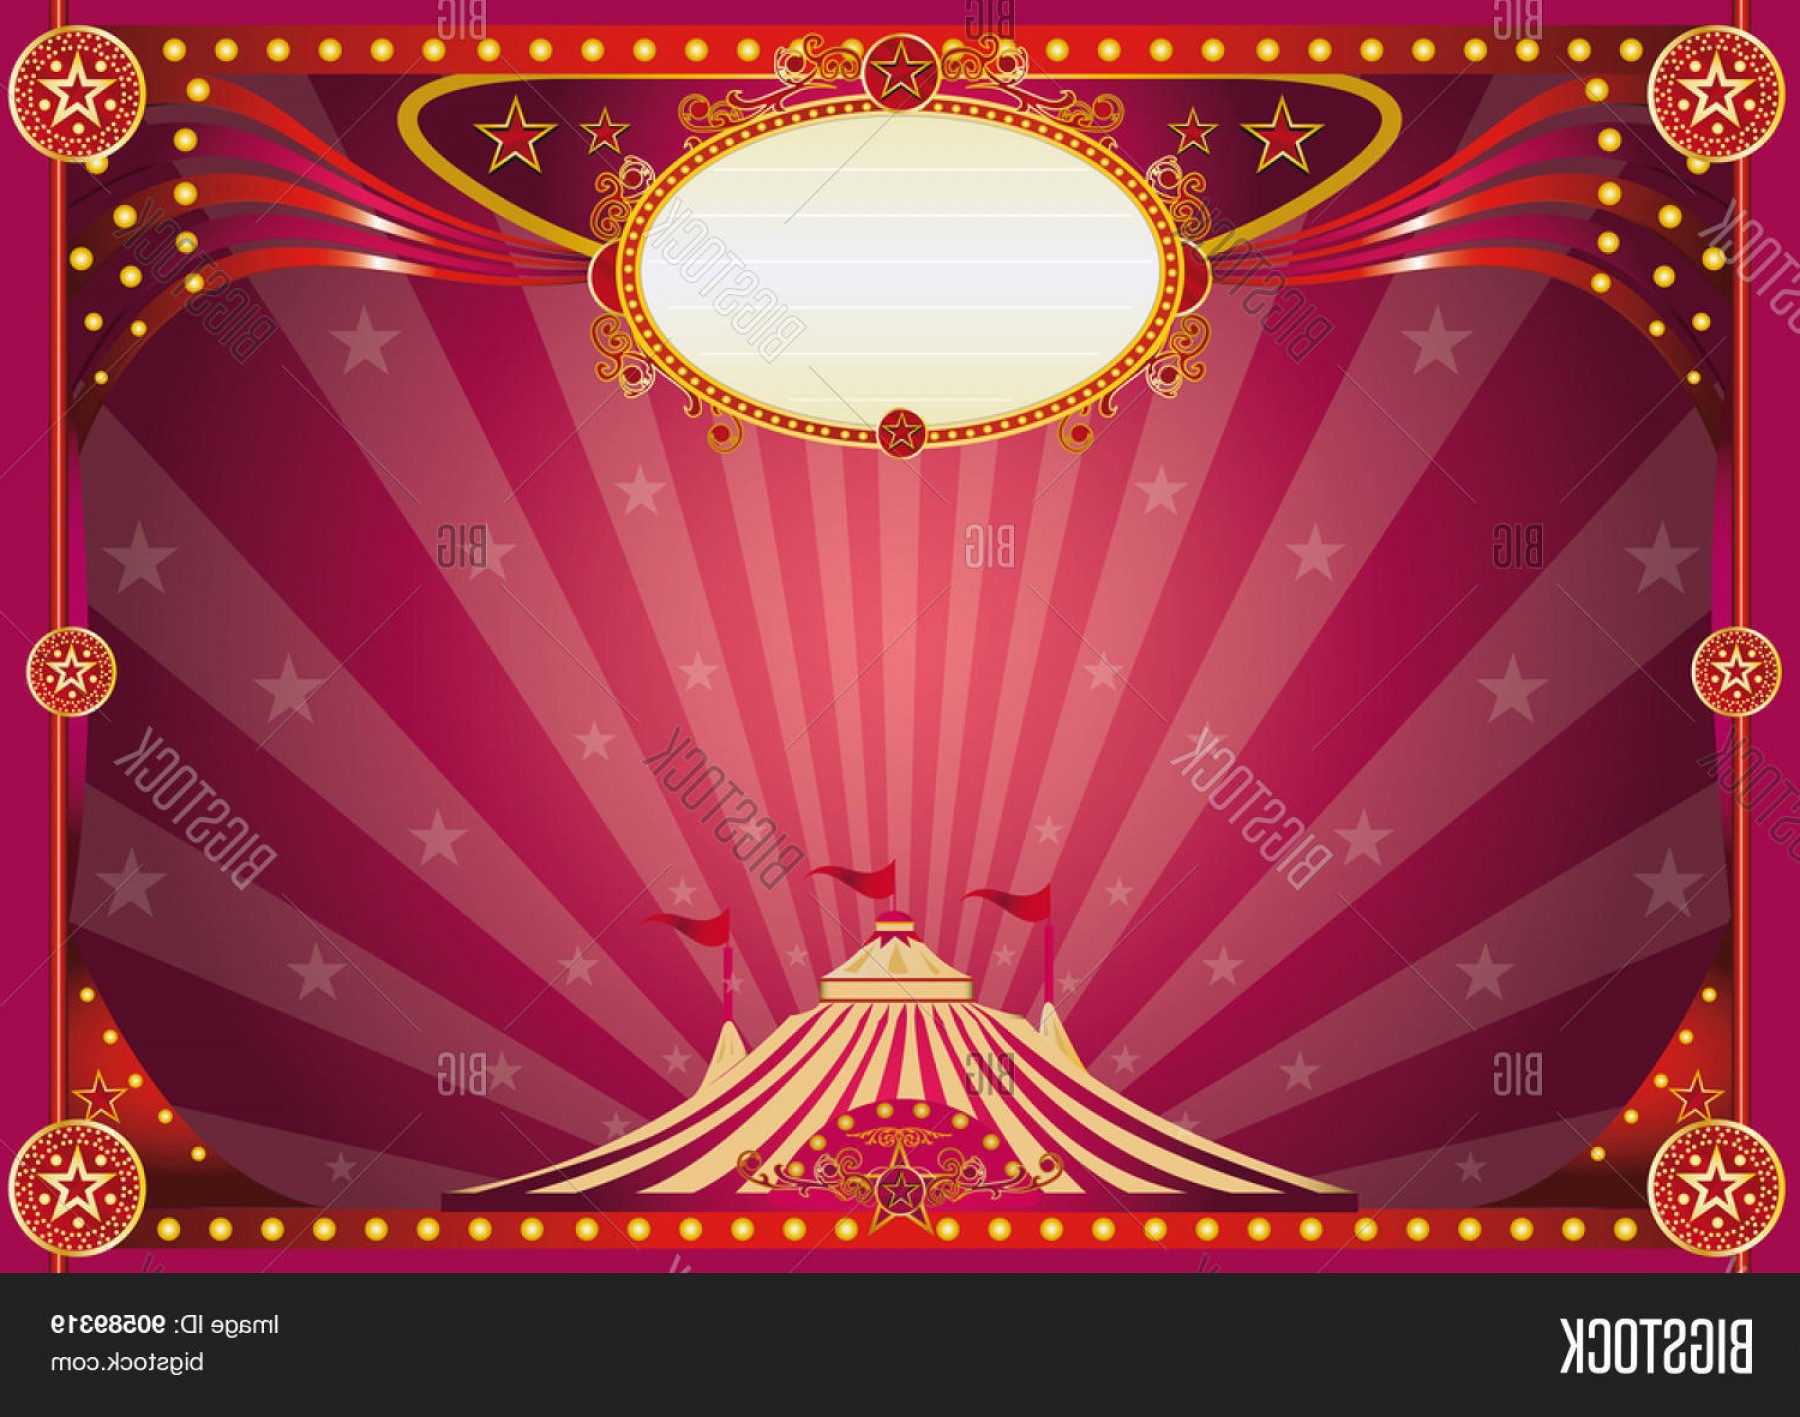 Circus Background Vector: Stock Vector Horizontal Magic Circus Background Horizontal Purple Circus Background For Your Show